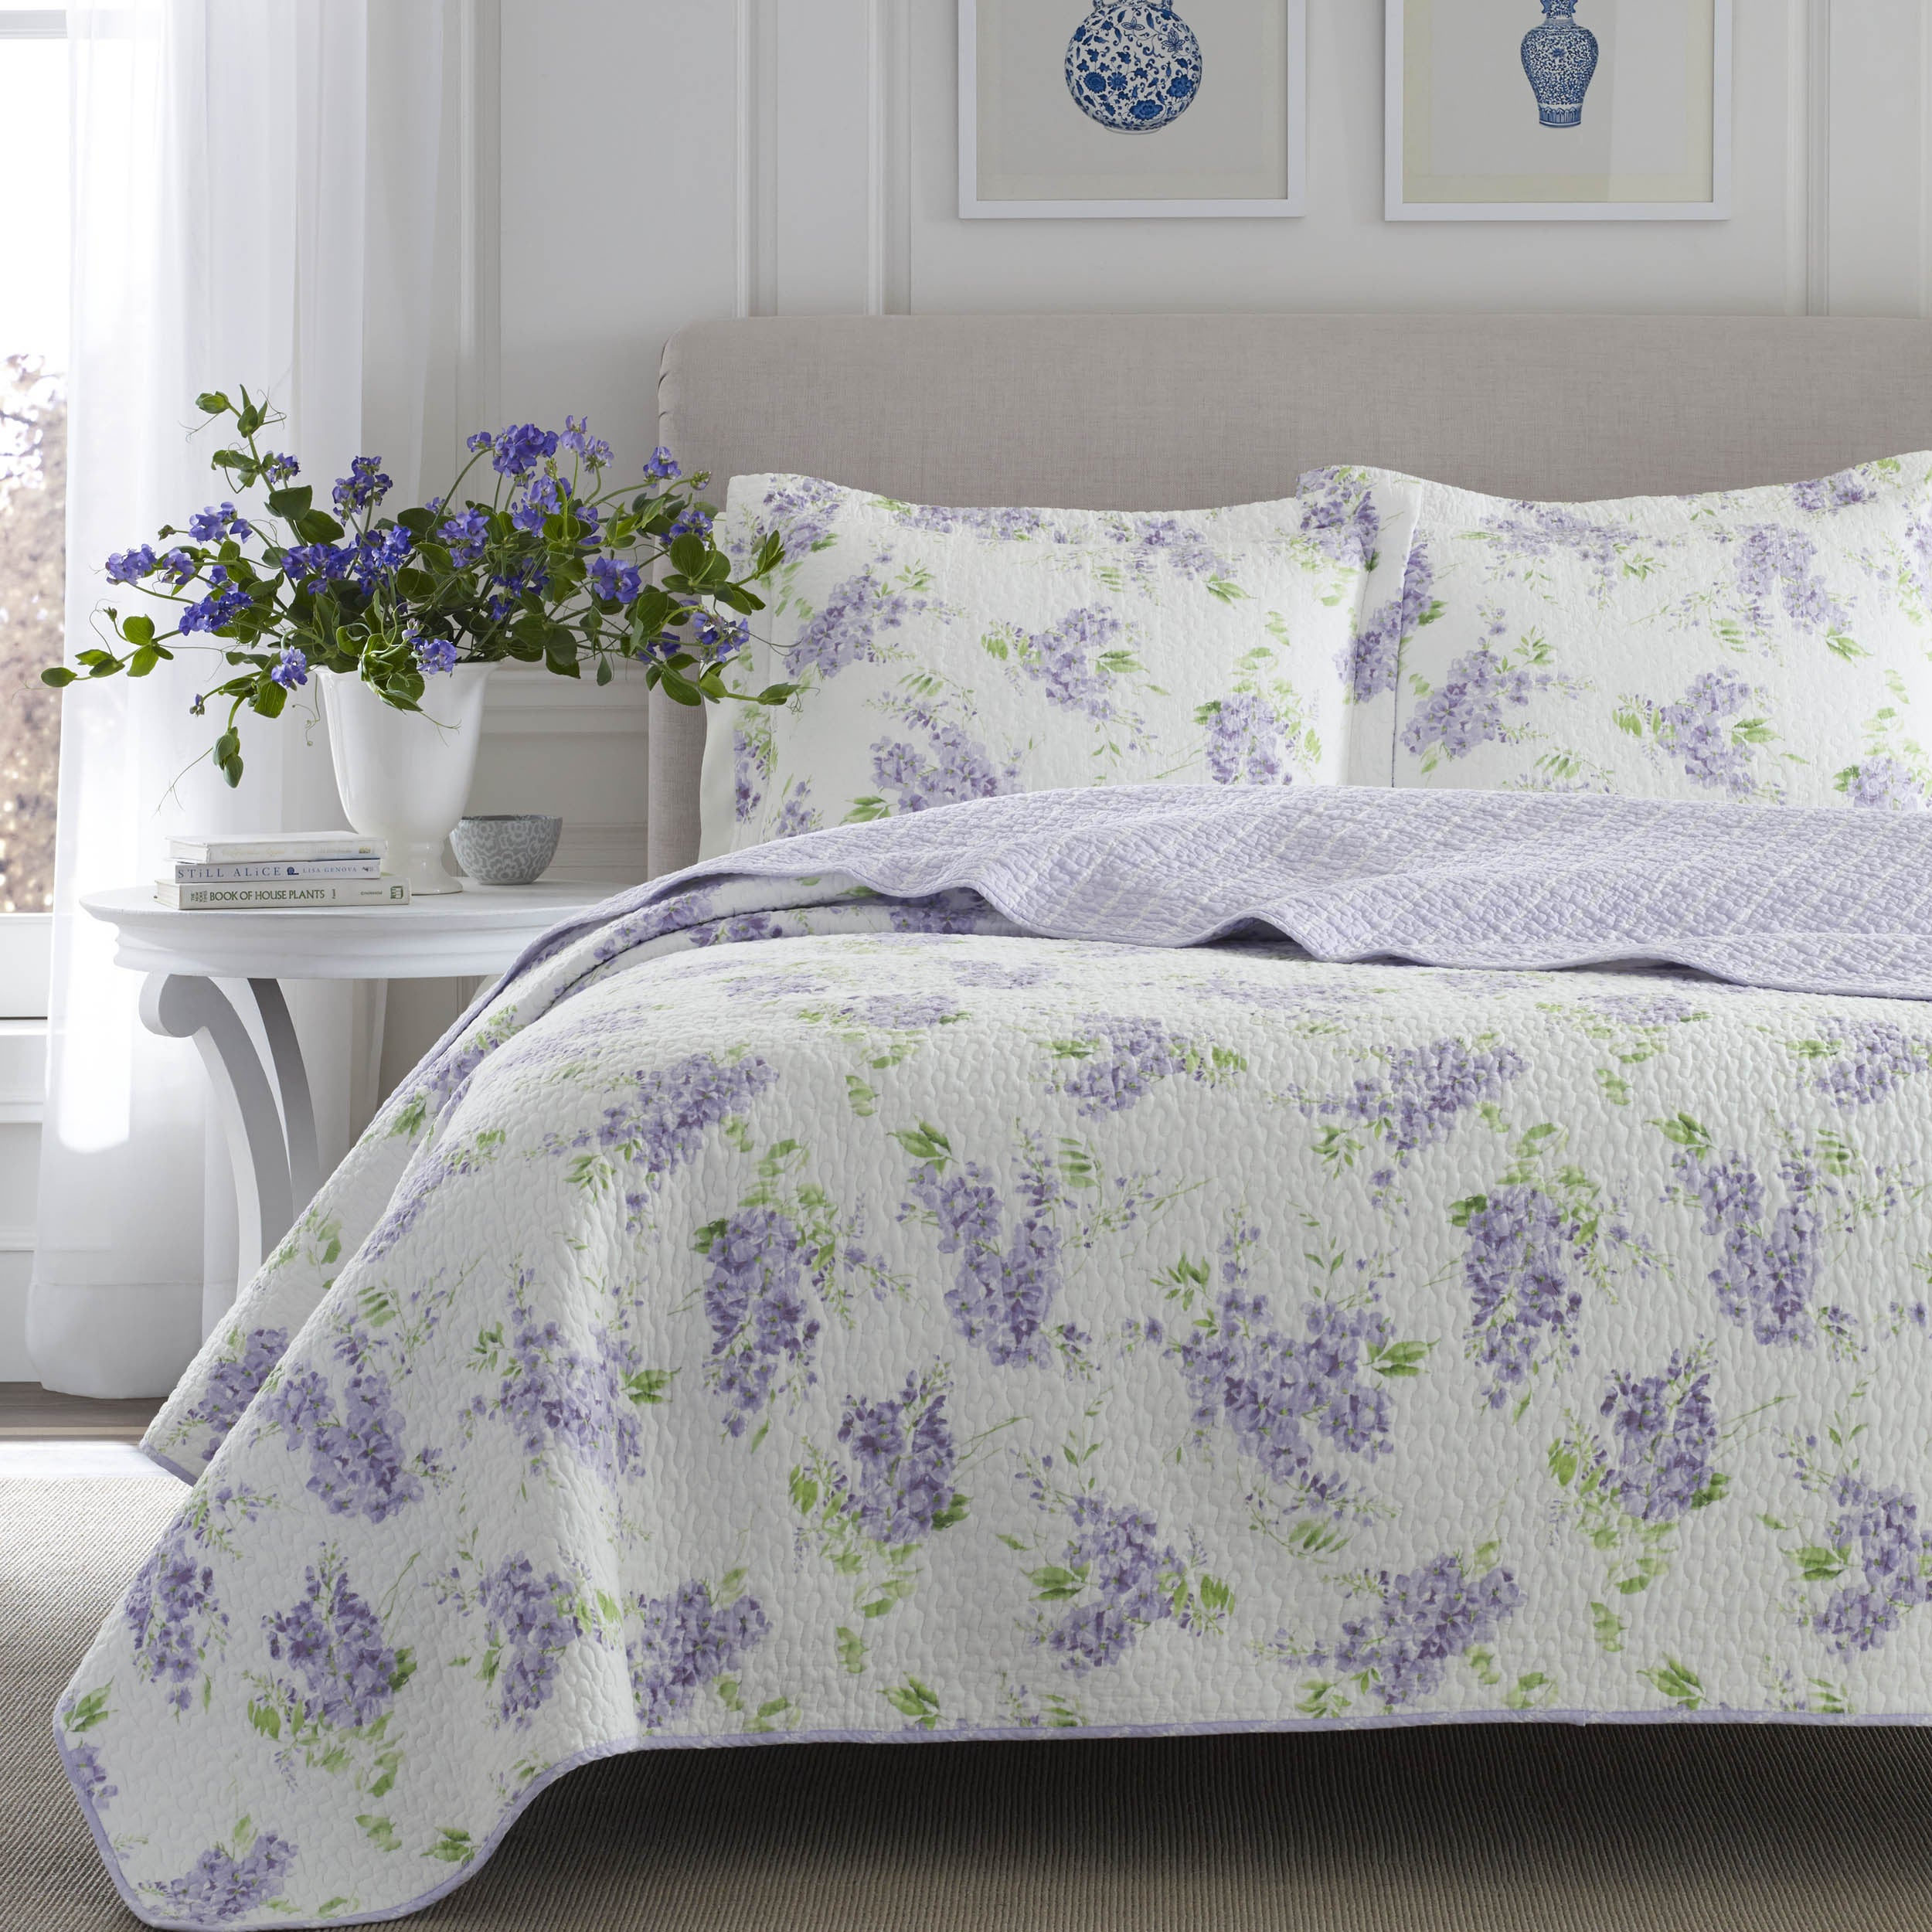 lavender fashions serenity purple bedding comforters greenland bedroom chrysanthemum stitched set quilt home